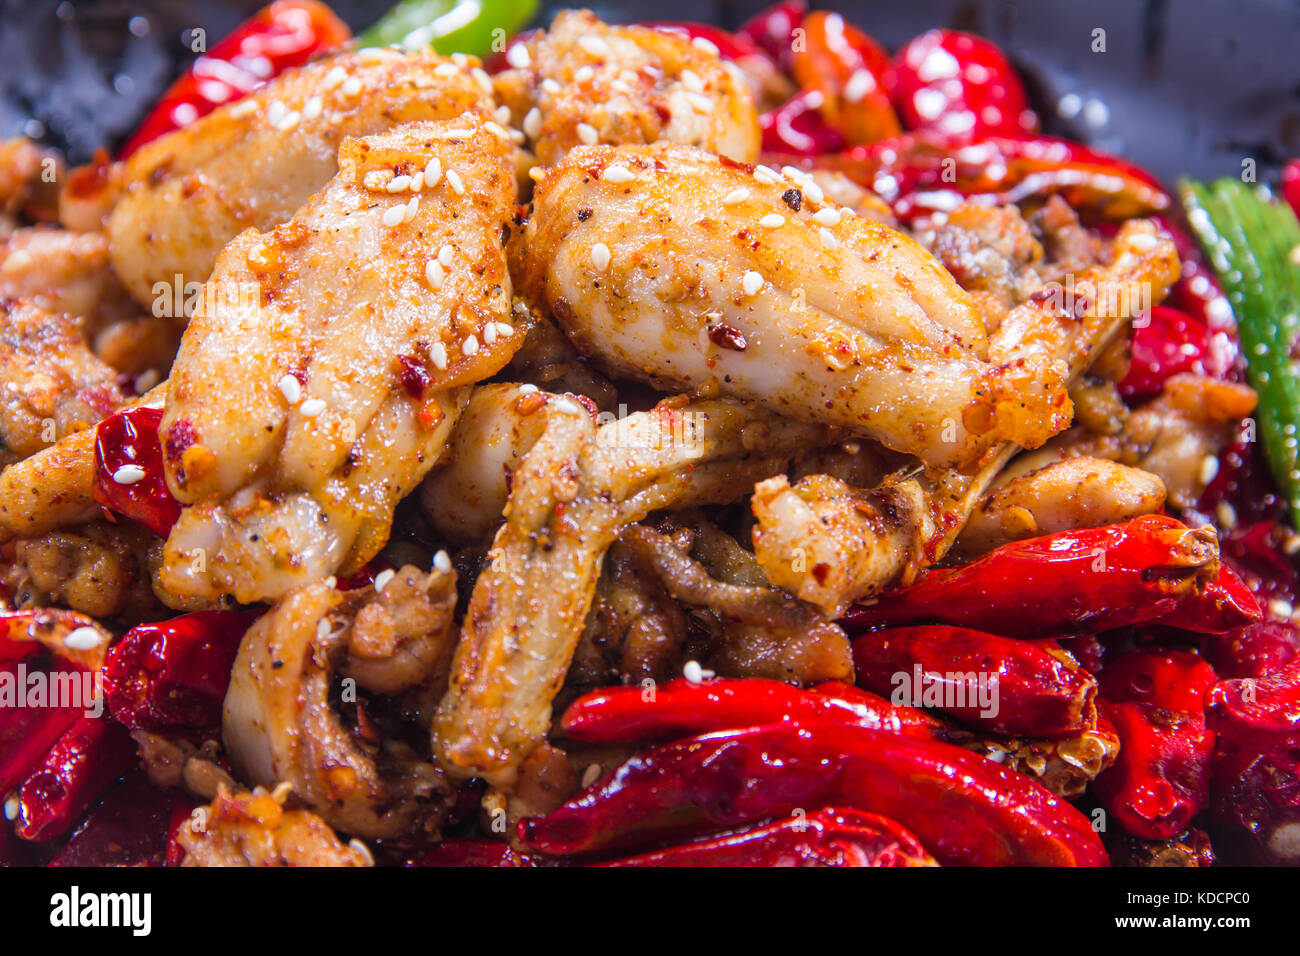 fried chicken with chili - Stock Image